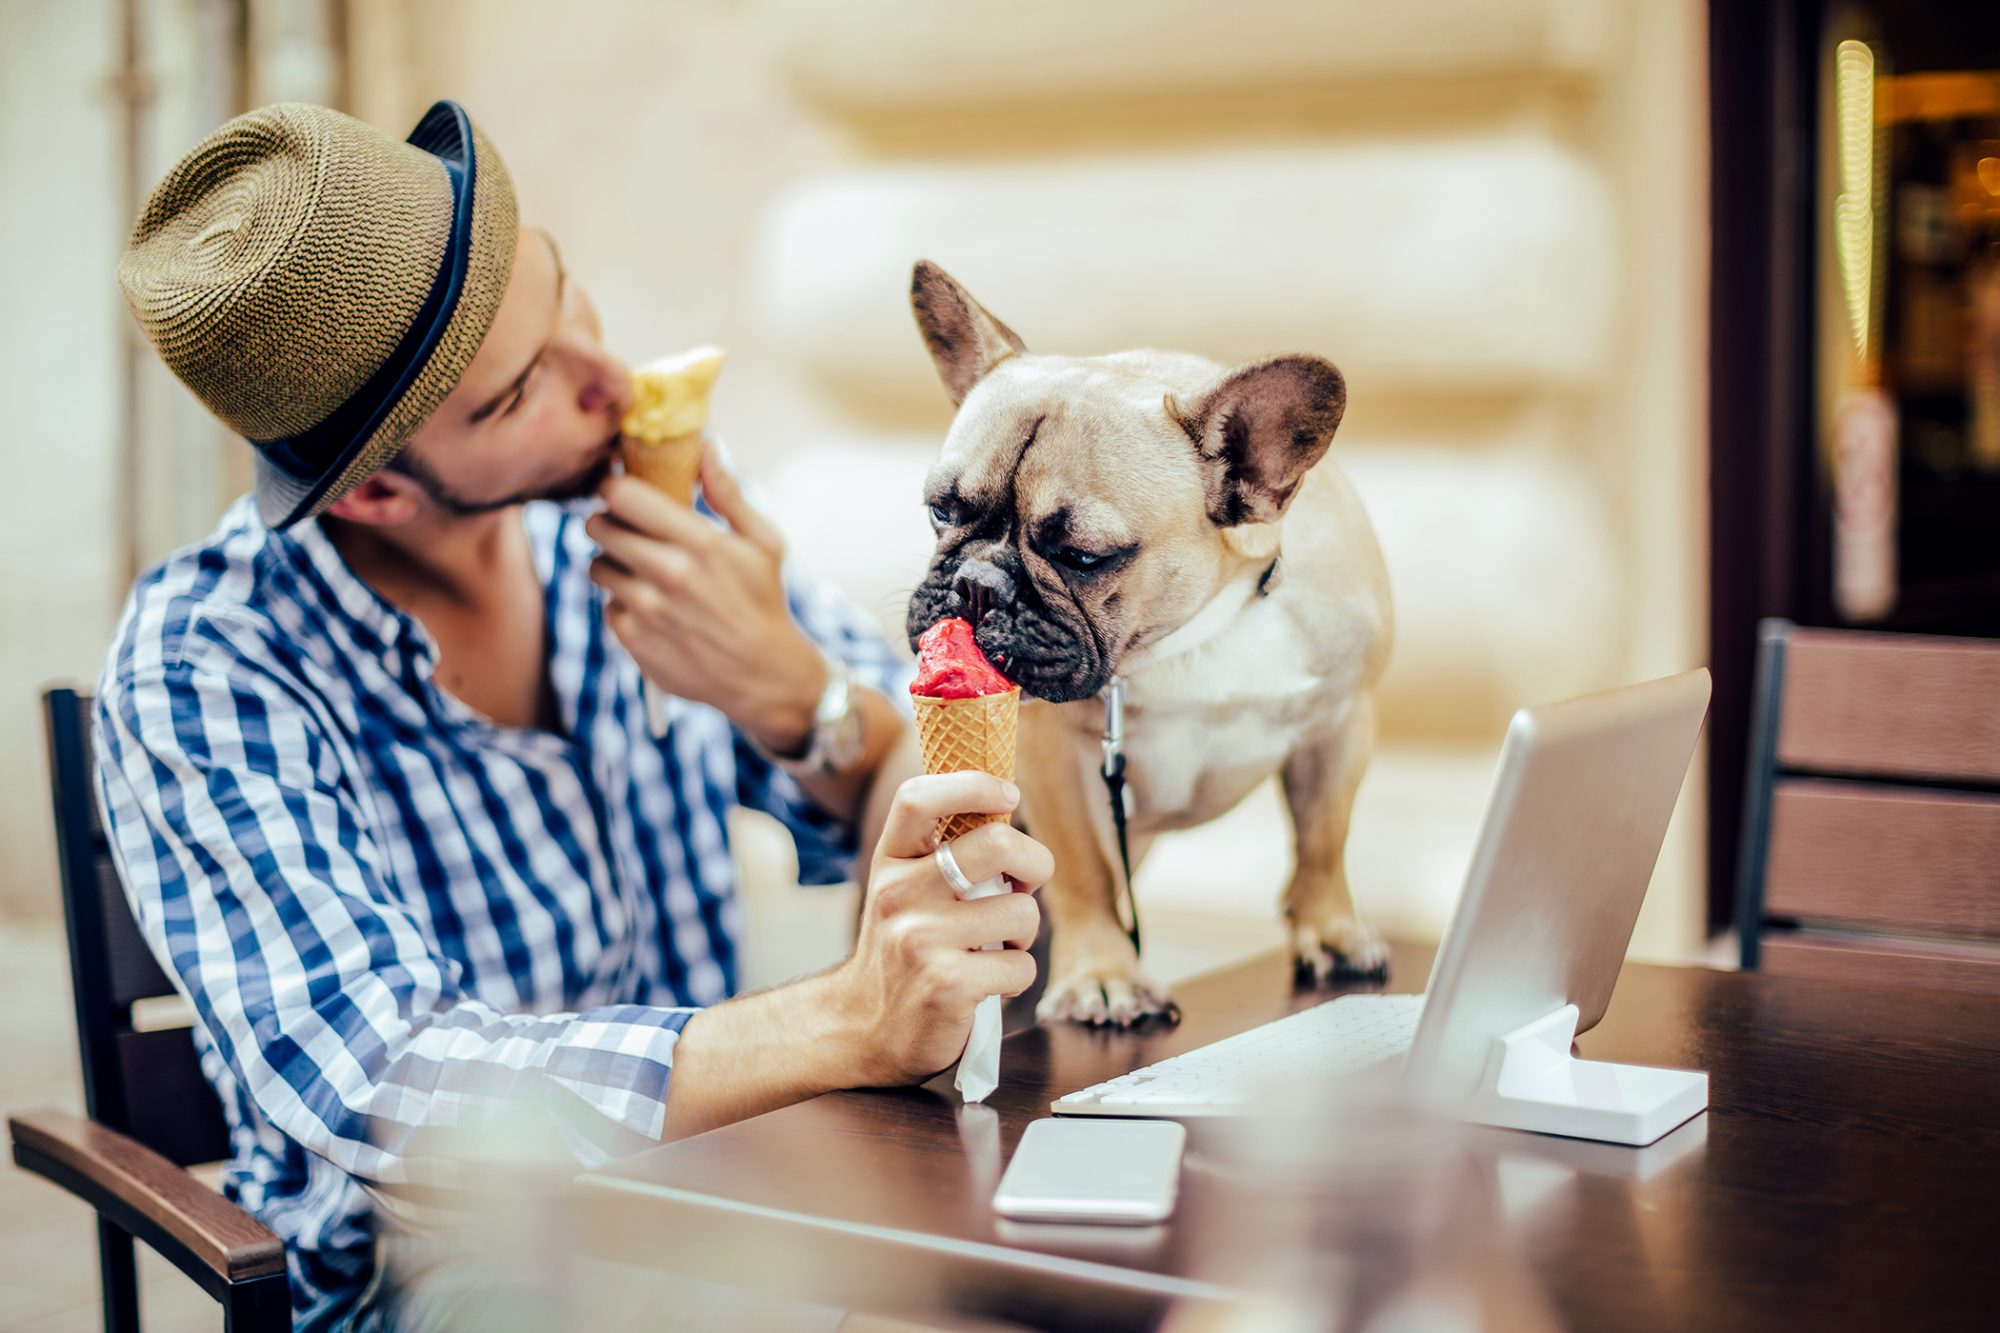 Young man sharing ice cream with his french bulldog